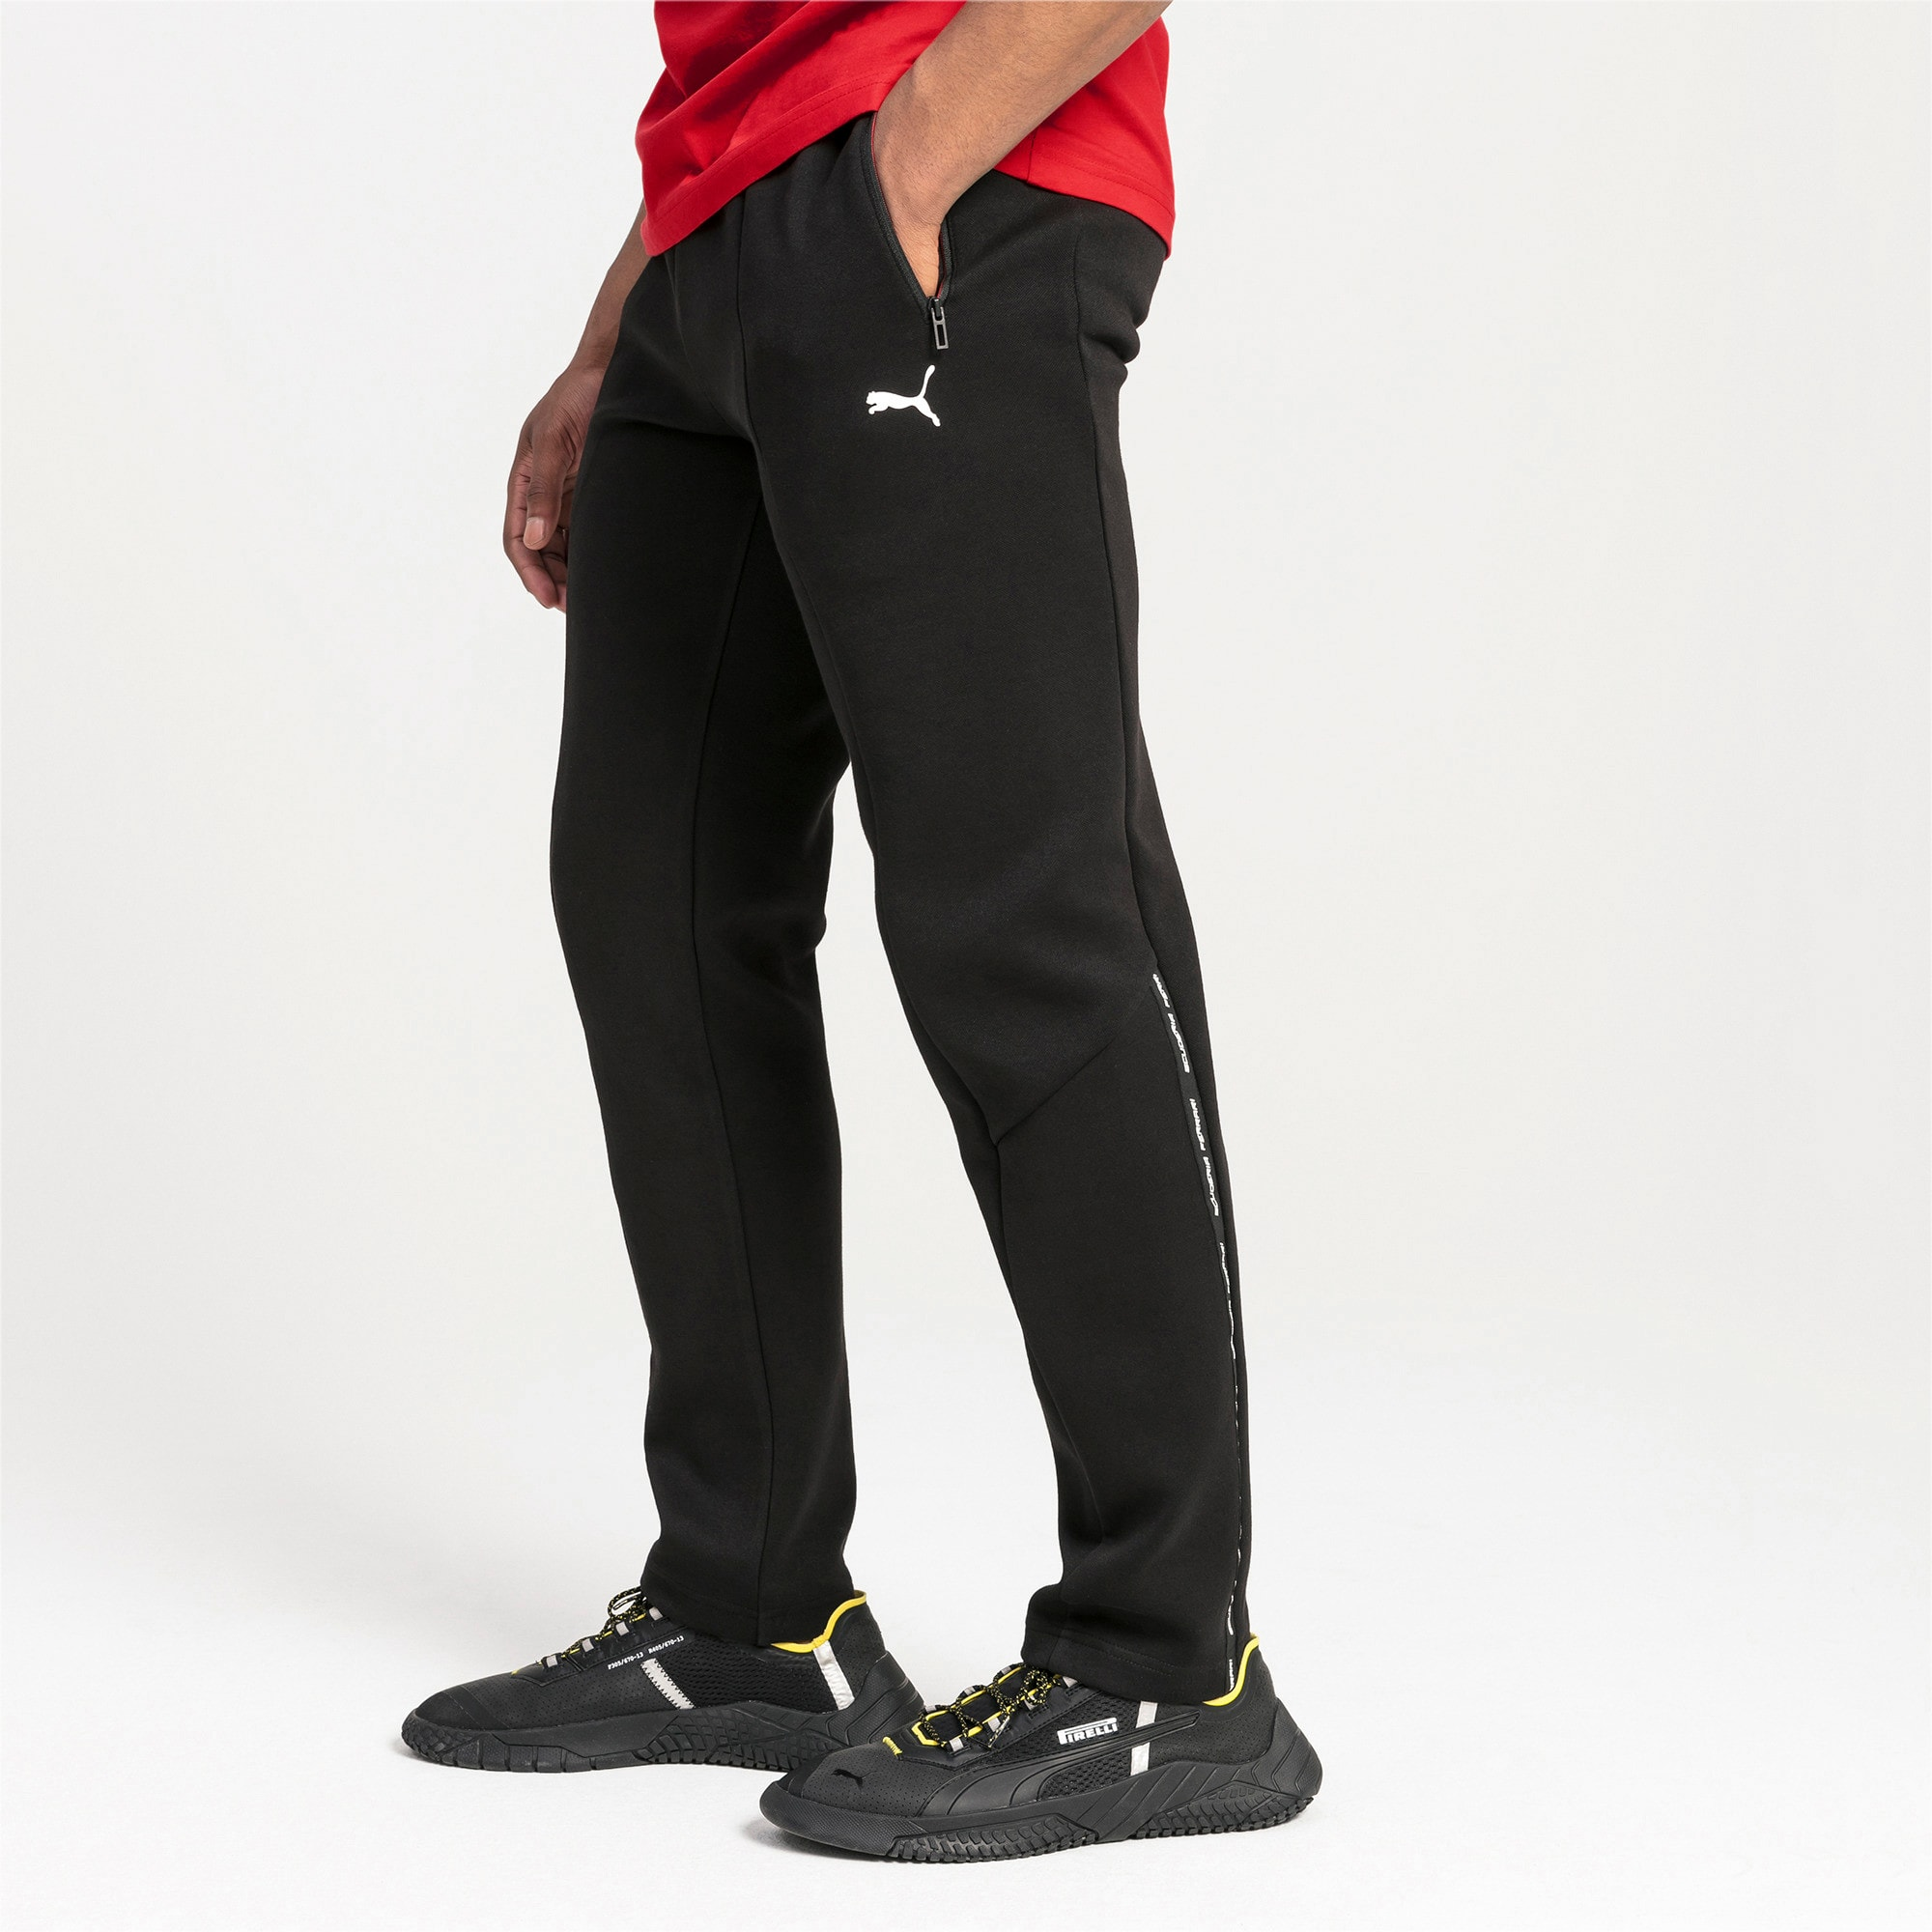 Thumbnail 1 of Ferrari Slim Men's Sweatpants, Puma Black, medium